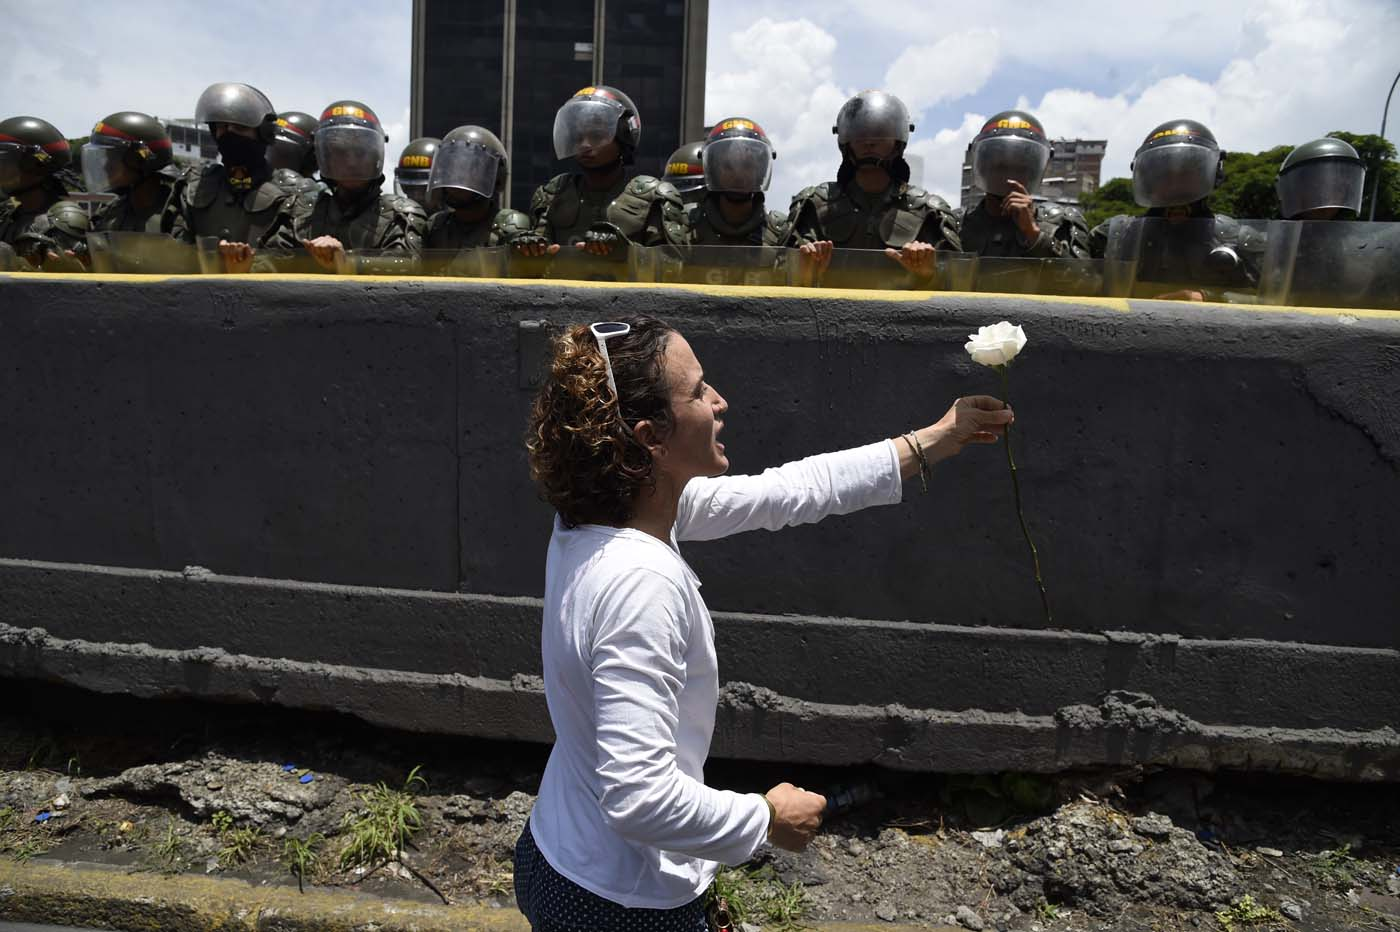 A Venezuelan opposition activist offers a flower to members of the Bolivarian National Guard standing guard during a women's march aimed to keep pressure on President Nicolas Maduro, whose authority is being increasingly challenged by protests and deadly unrest, in Caracas on May 6, 2017. The death toll since April, when the protests intensified after Maduro's administration and the courts stepped up efforts to undermine the opposition, is at least 36 according to prosecutors. / AFP PHOTO / JUAN BARRETO